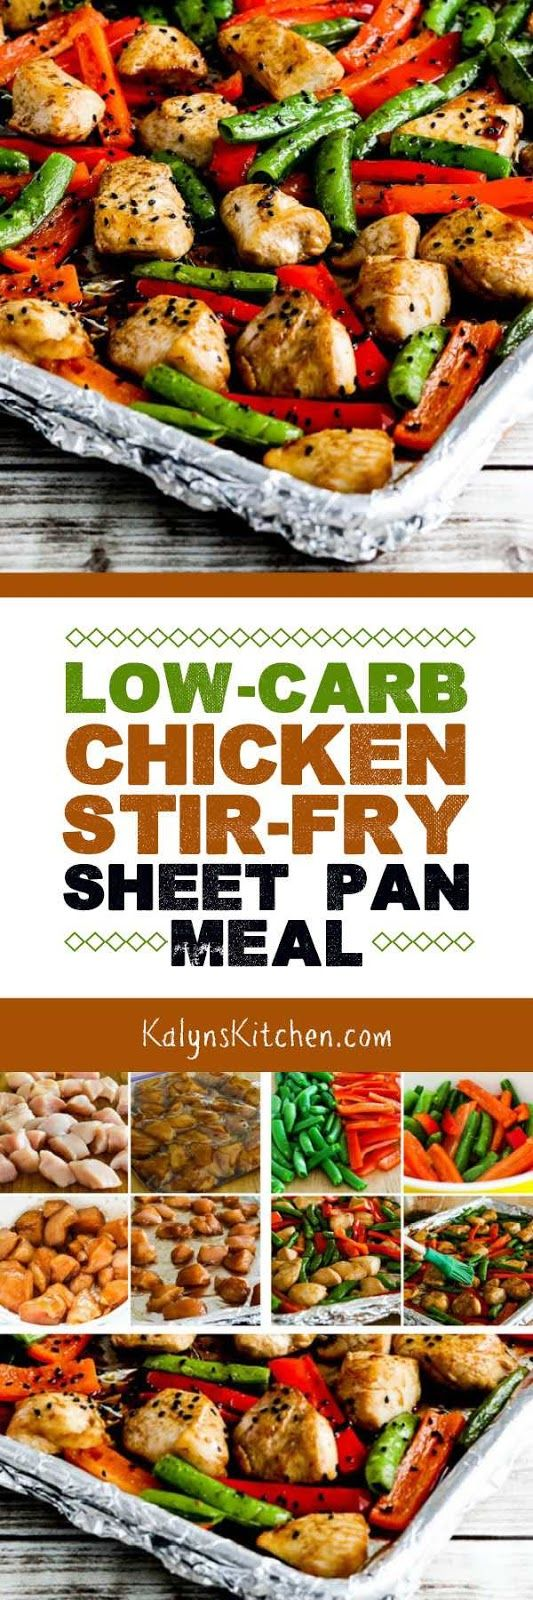 Marinate the chicken while you're at work, and this Low-Carb Chicken Stir-Fry Sheet Pan Meal can be on the table in less than 30 minutes. This is a meal the whole family will love, and it's low-carb, low-glycemic, dairy-free, South Beach Diet friendly, and can be gluten-free if you use gluten-free soy sauce. [found on KalynsKitchen.com] #LowCarb #LowCarbSheetPanMeal #LowCarbChickenStirFry #ChickenStirFrySheetPanMeal